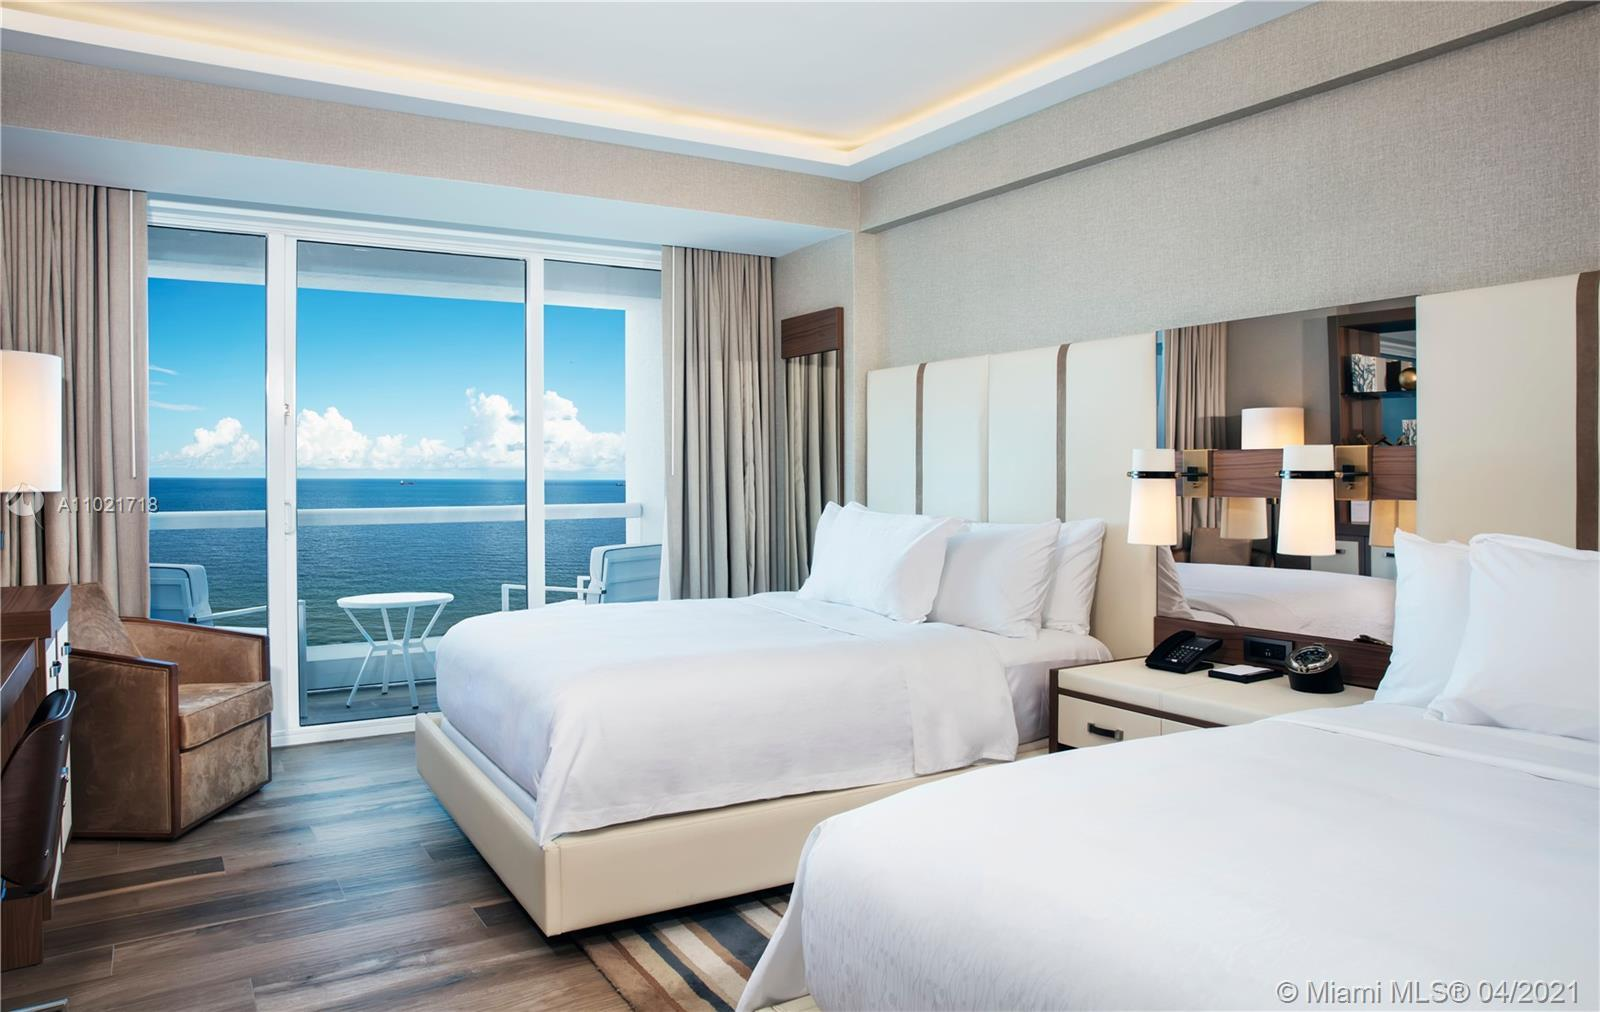 Full service living at it's finest! This direct ocean view, fully furnished studio, is a perfect sec